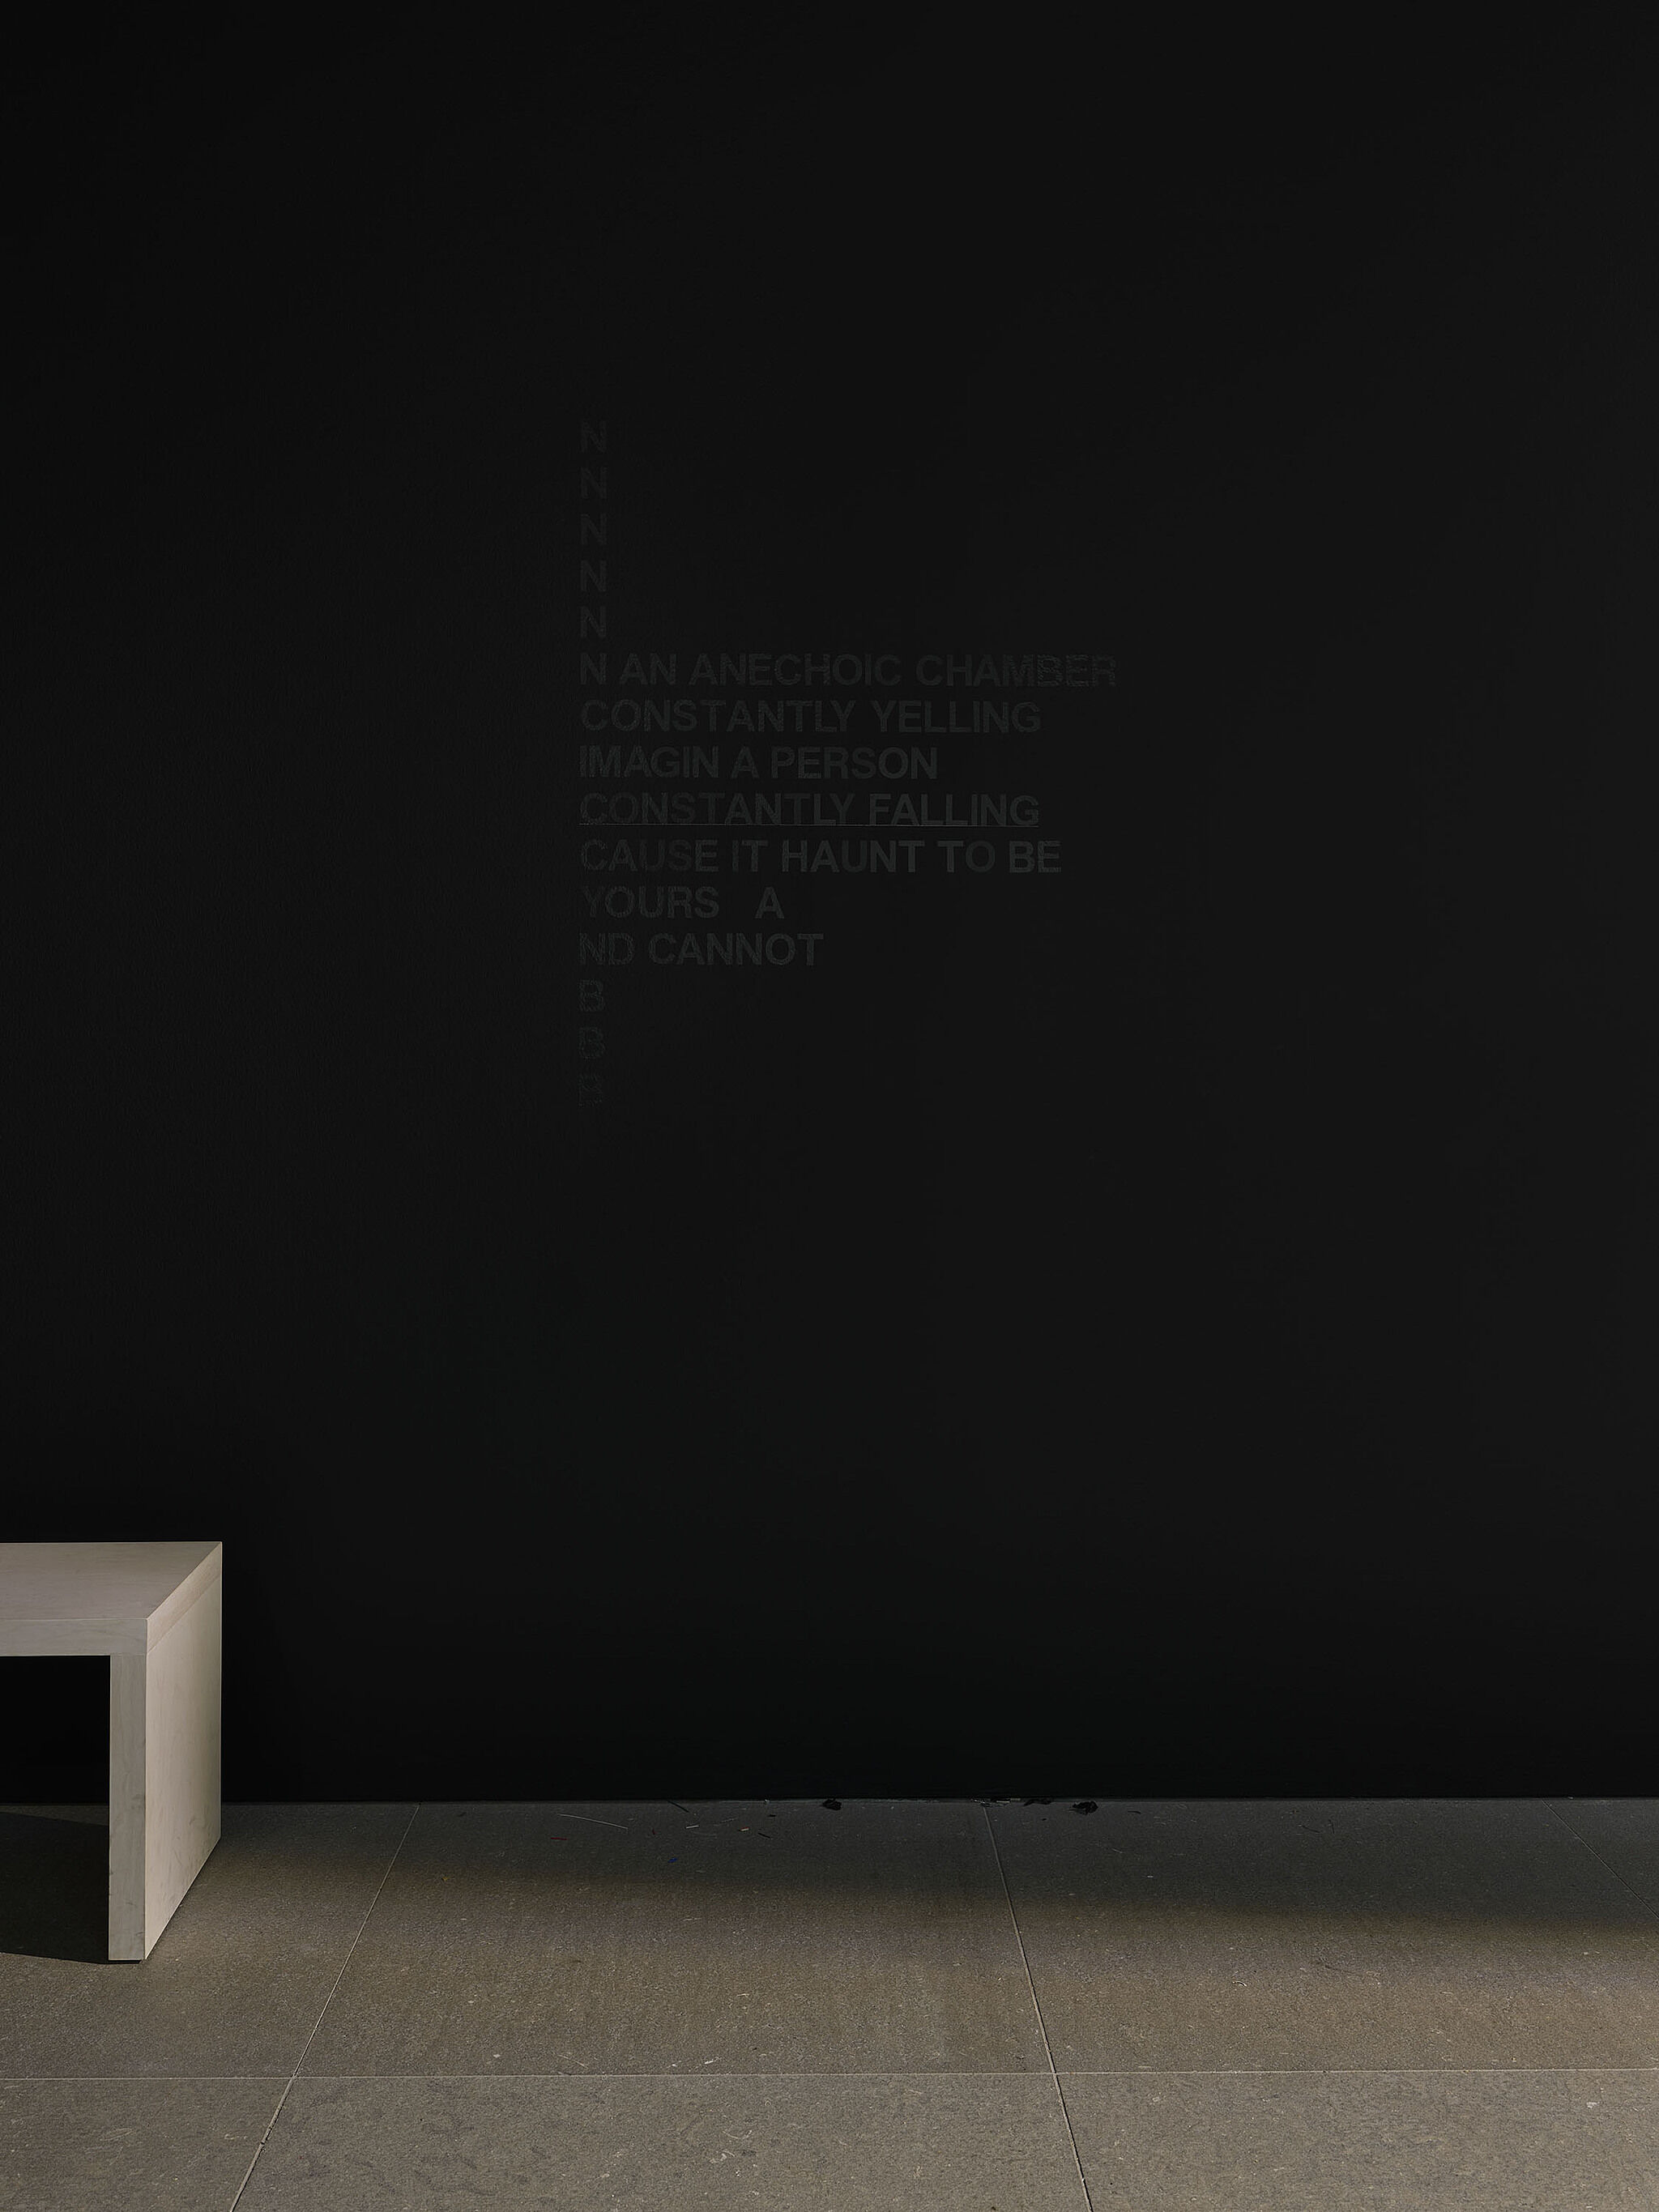 A black wall with black vinyl words.